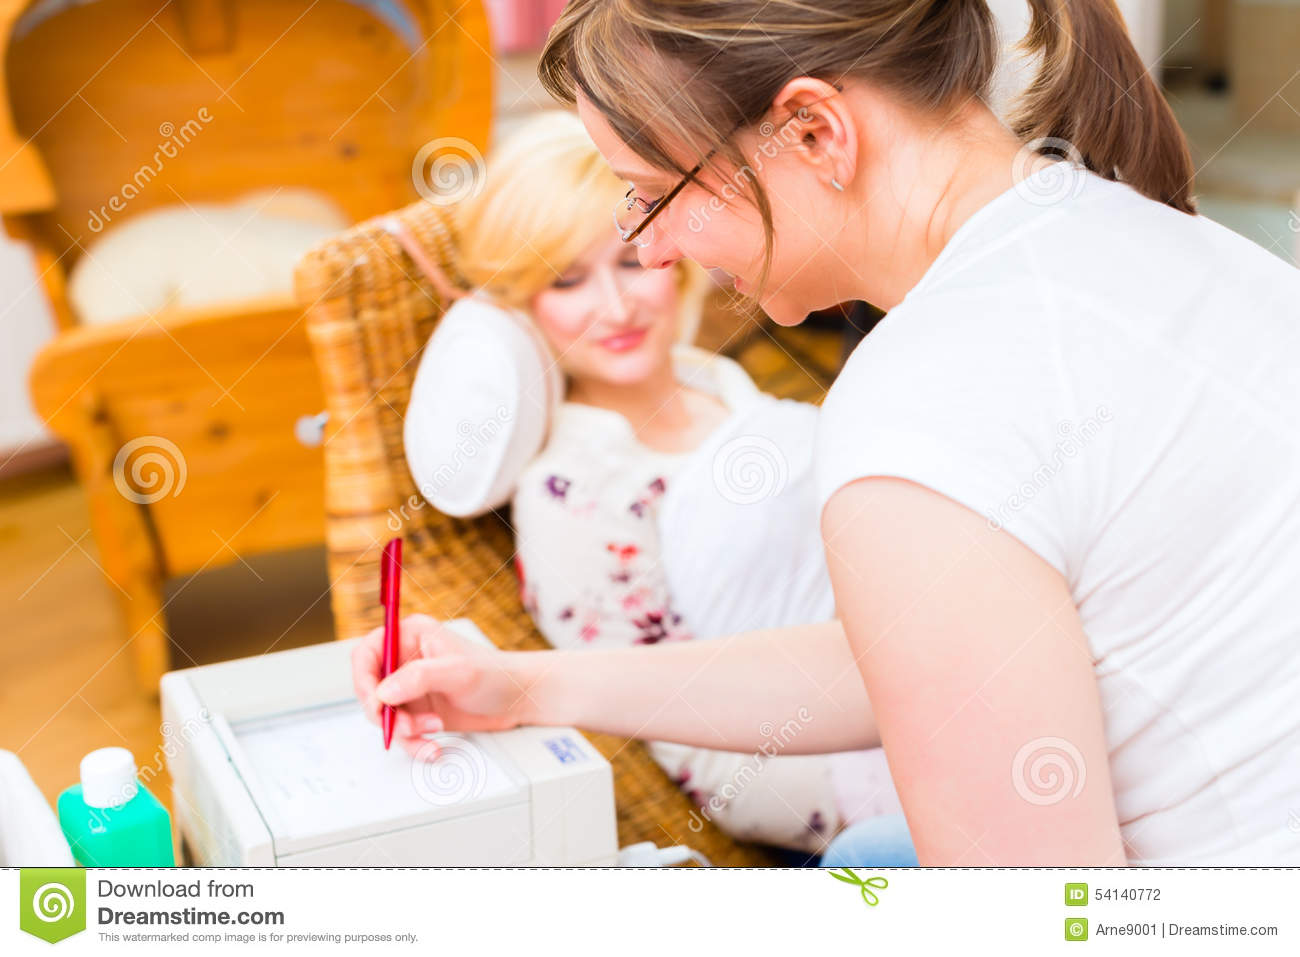 When do examinations expectant mother